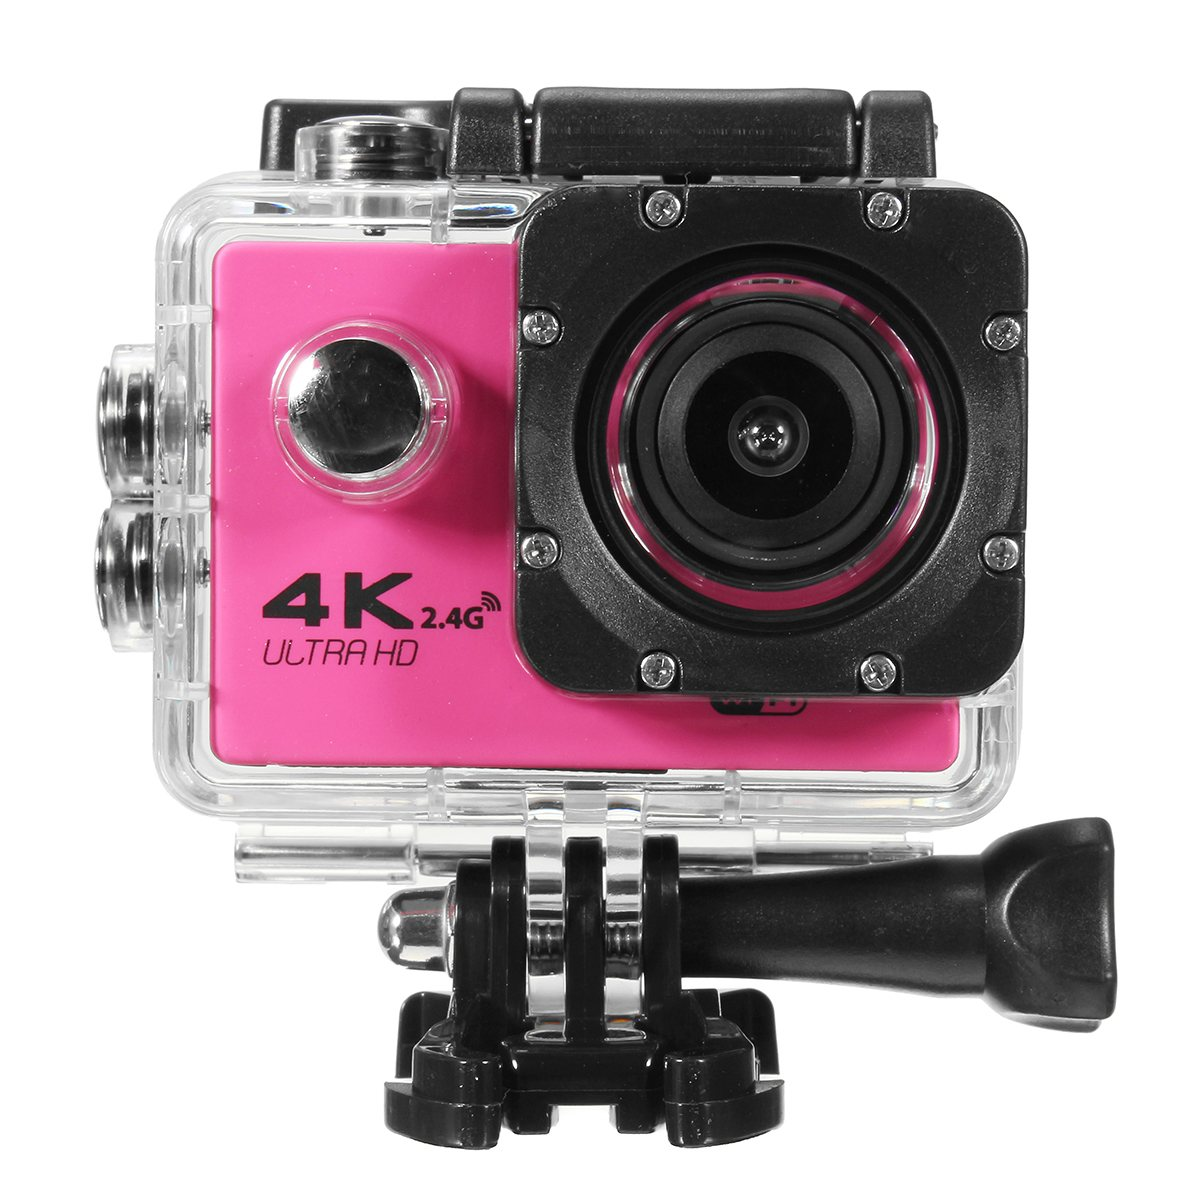 Multi Color Action Camera F60R Ultra HD 4K /30fps WiFi 2.0 170D go Helmet Cam pro underwater waterproof Sport Consumer Camera ...